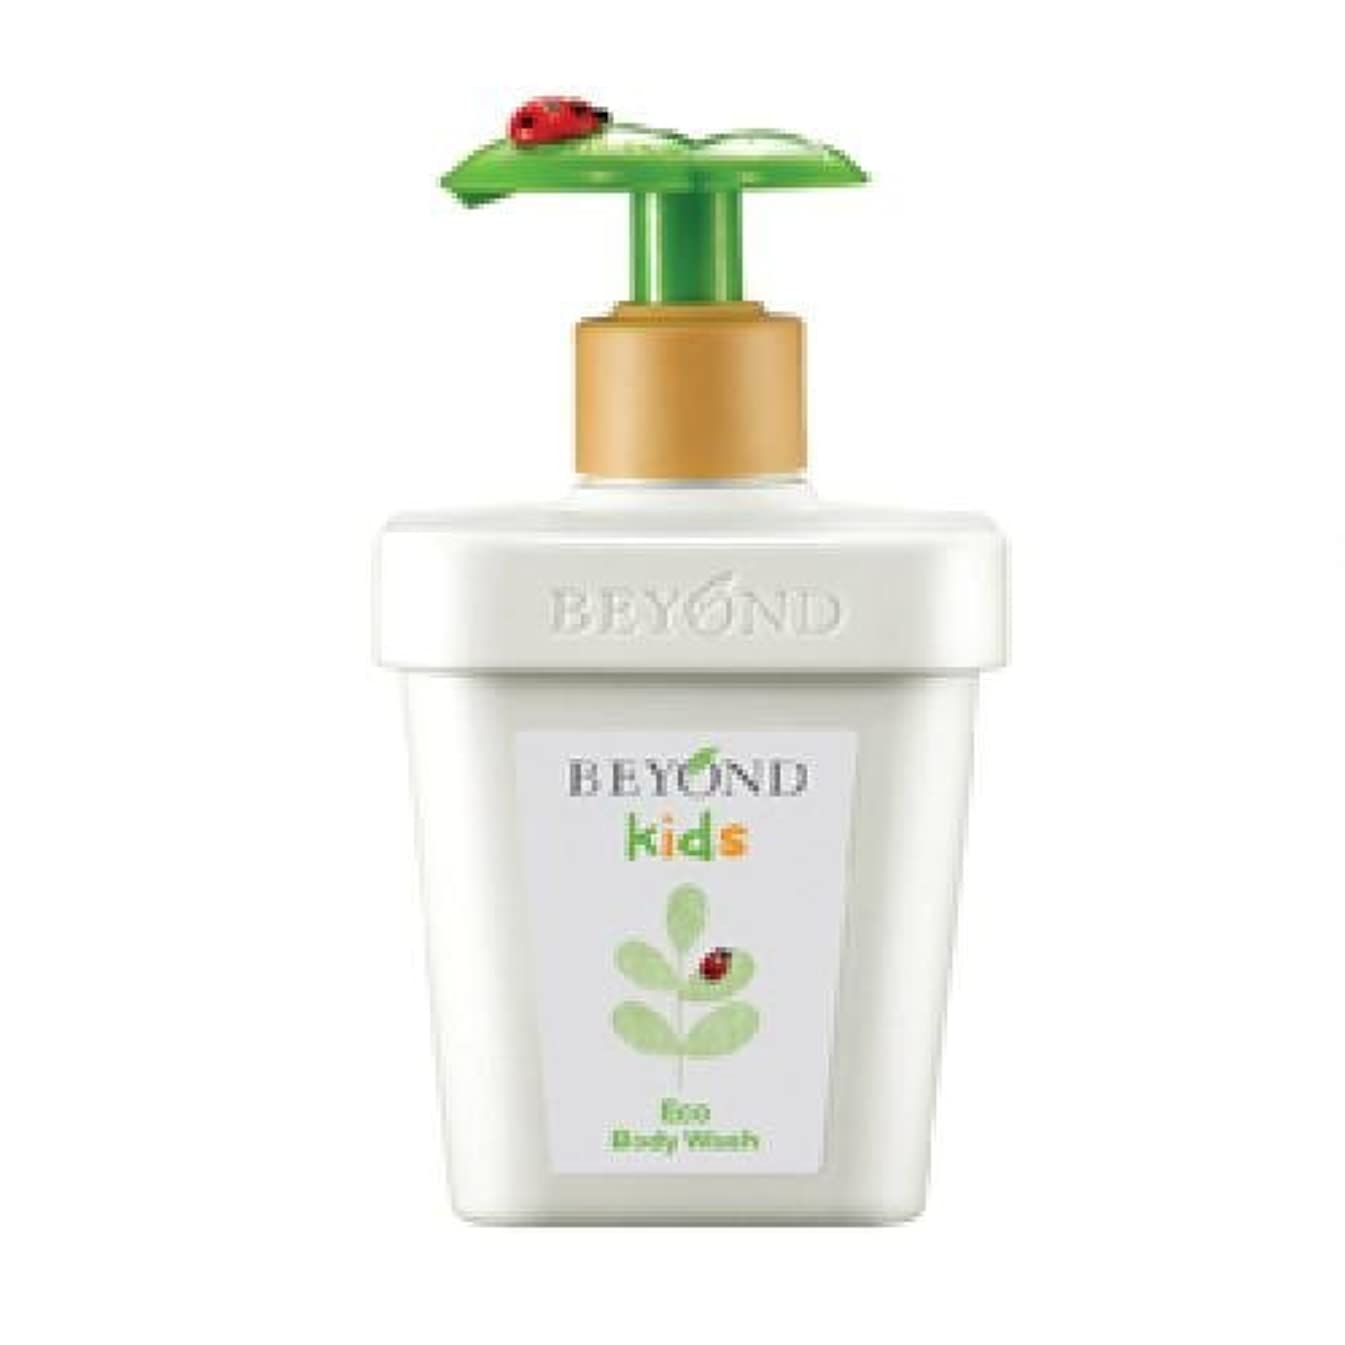 発行するスローガン実り多いBEYOND Kids Eco Body Wash [Korean Import]